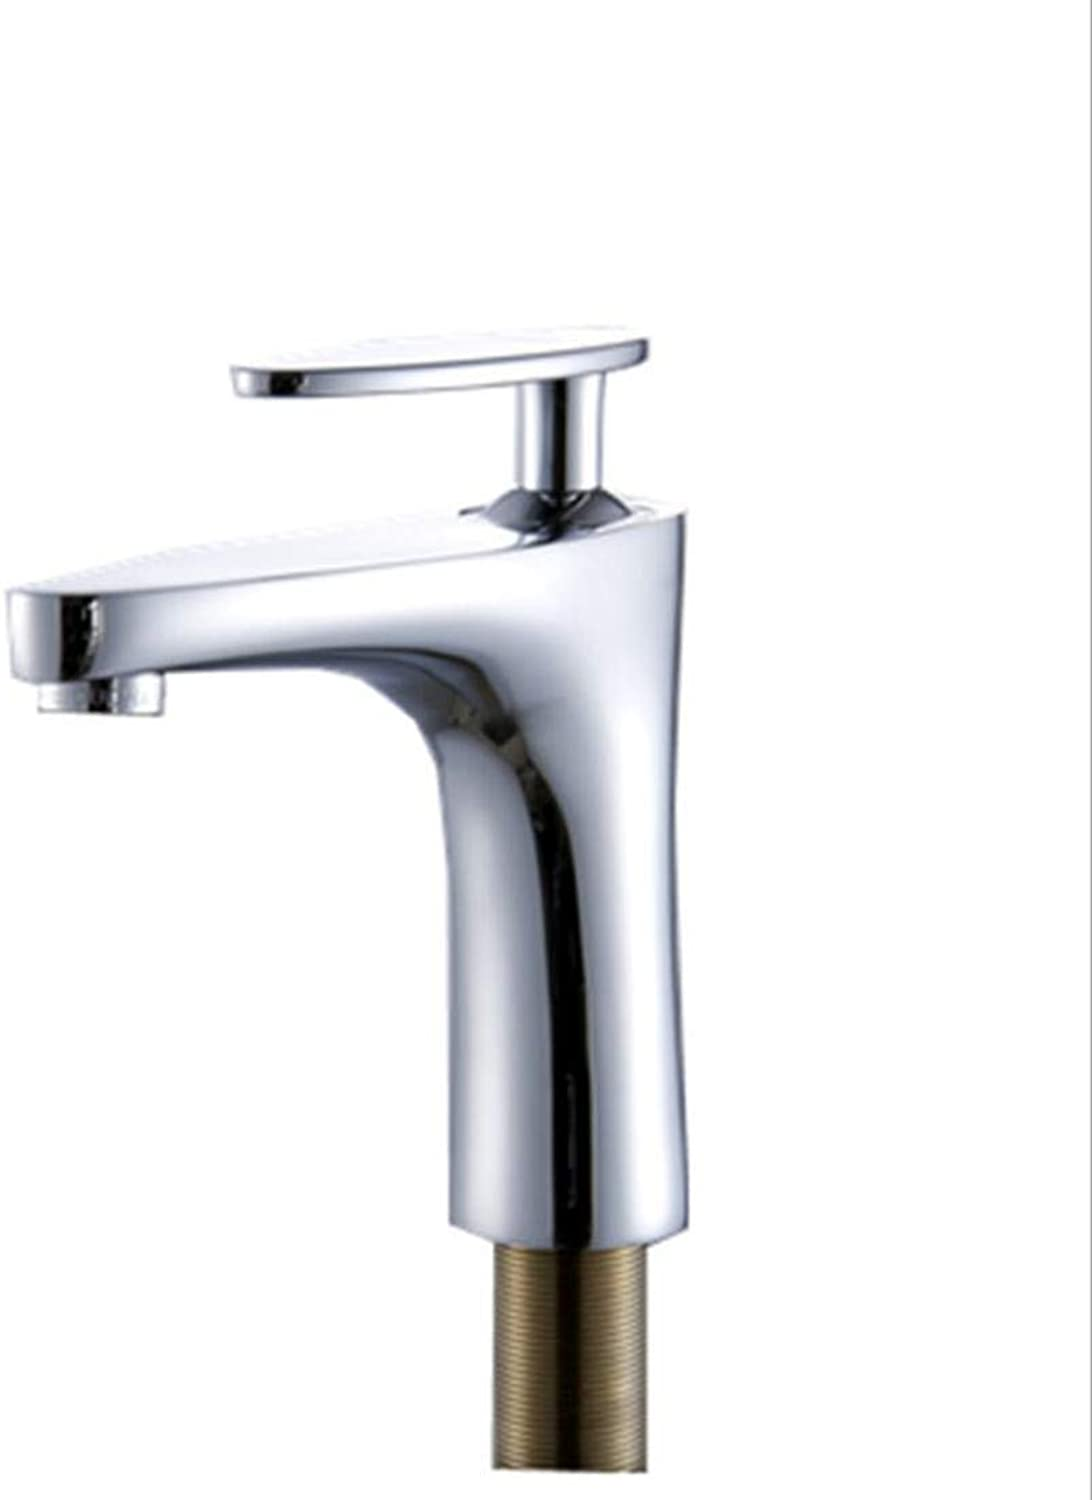 Ss Bathroom Basin Single Hole Sink Faucet Wash Basin Basin Copper Hot And Cold Mixing Faucet